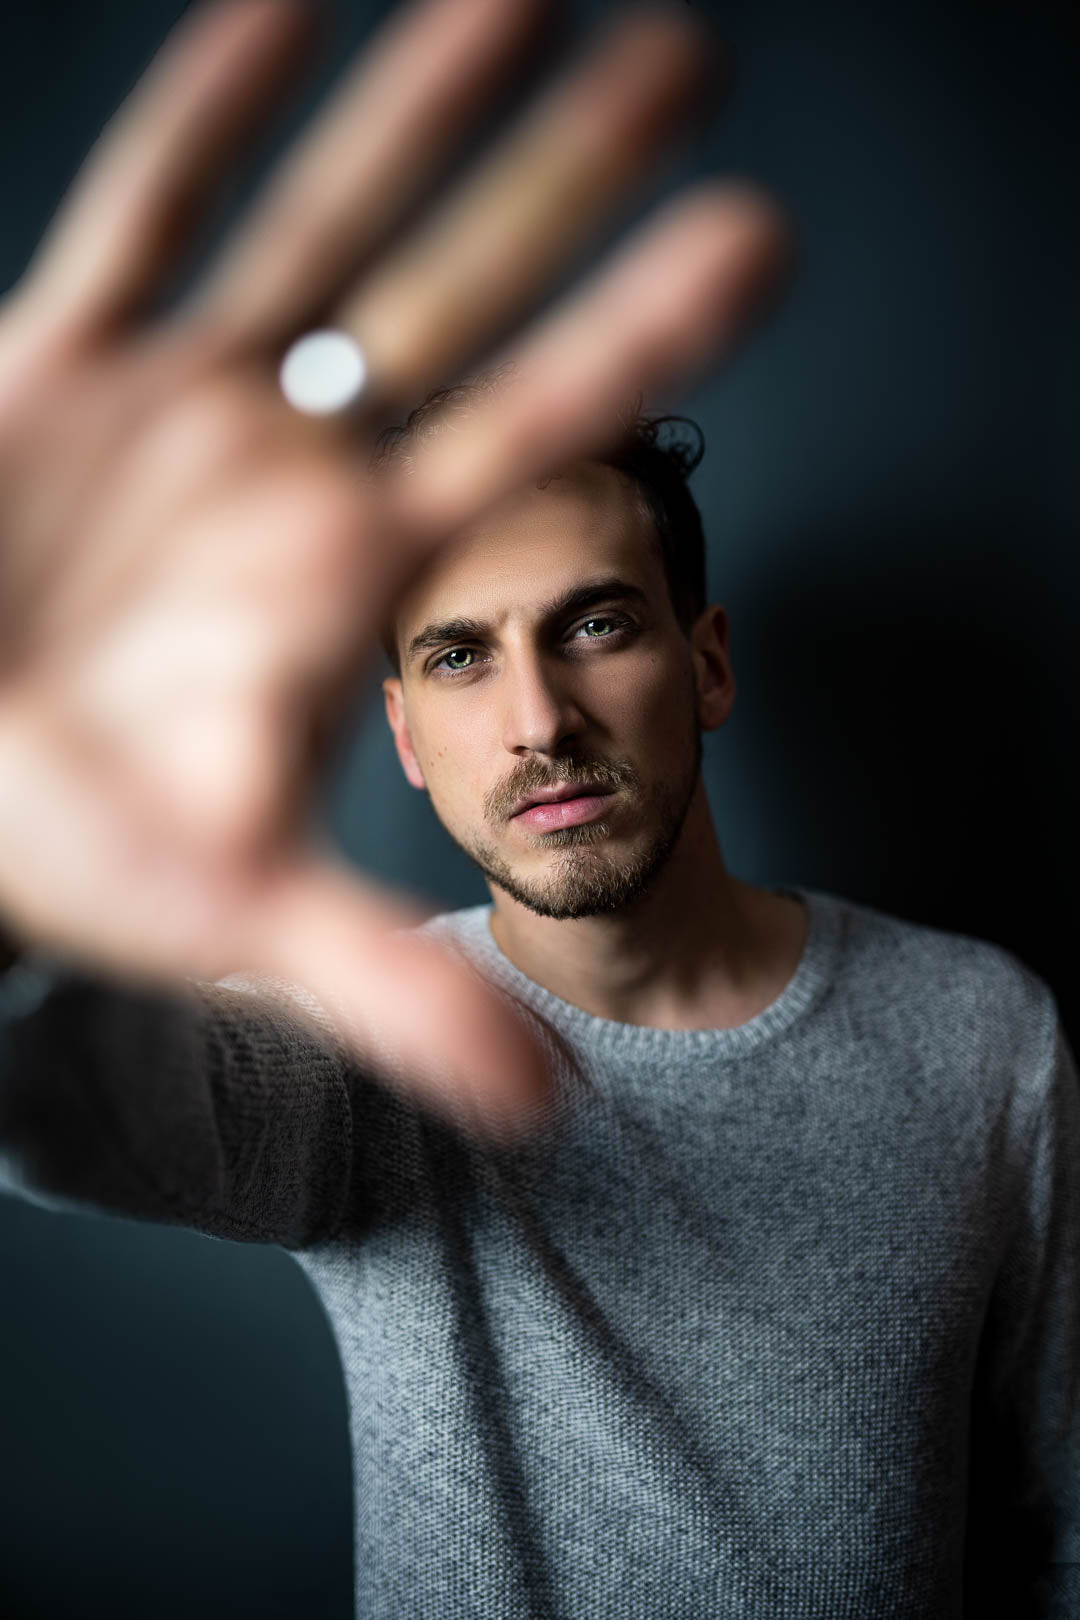 Male model putting his hand in front of the camera lens in a photo studio